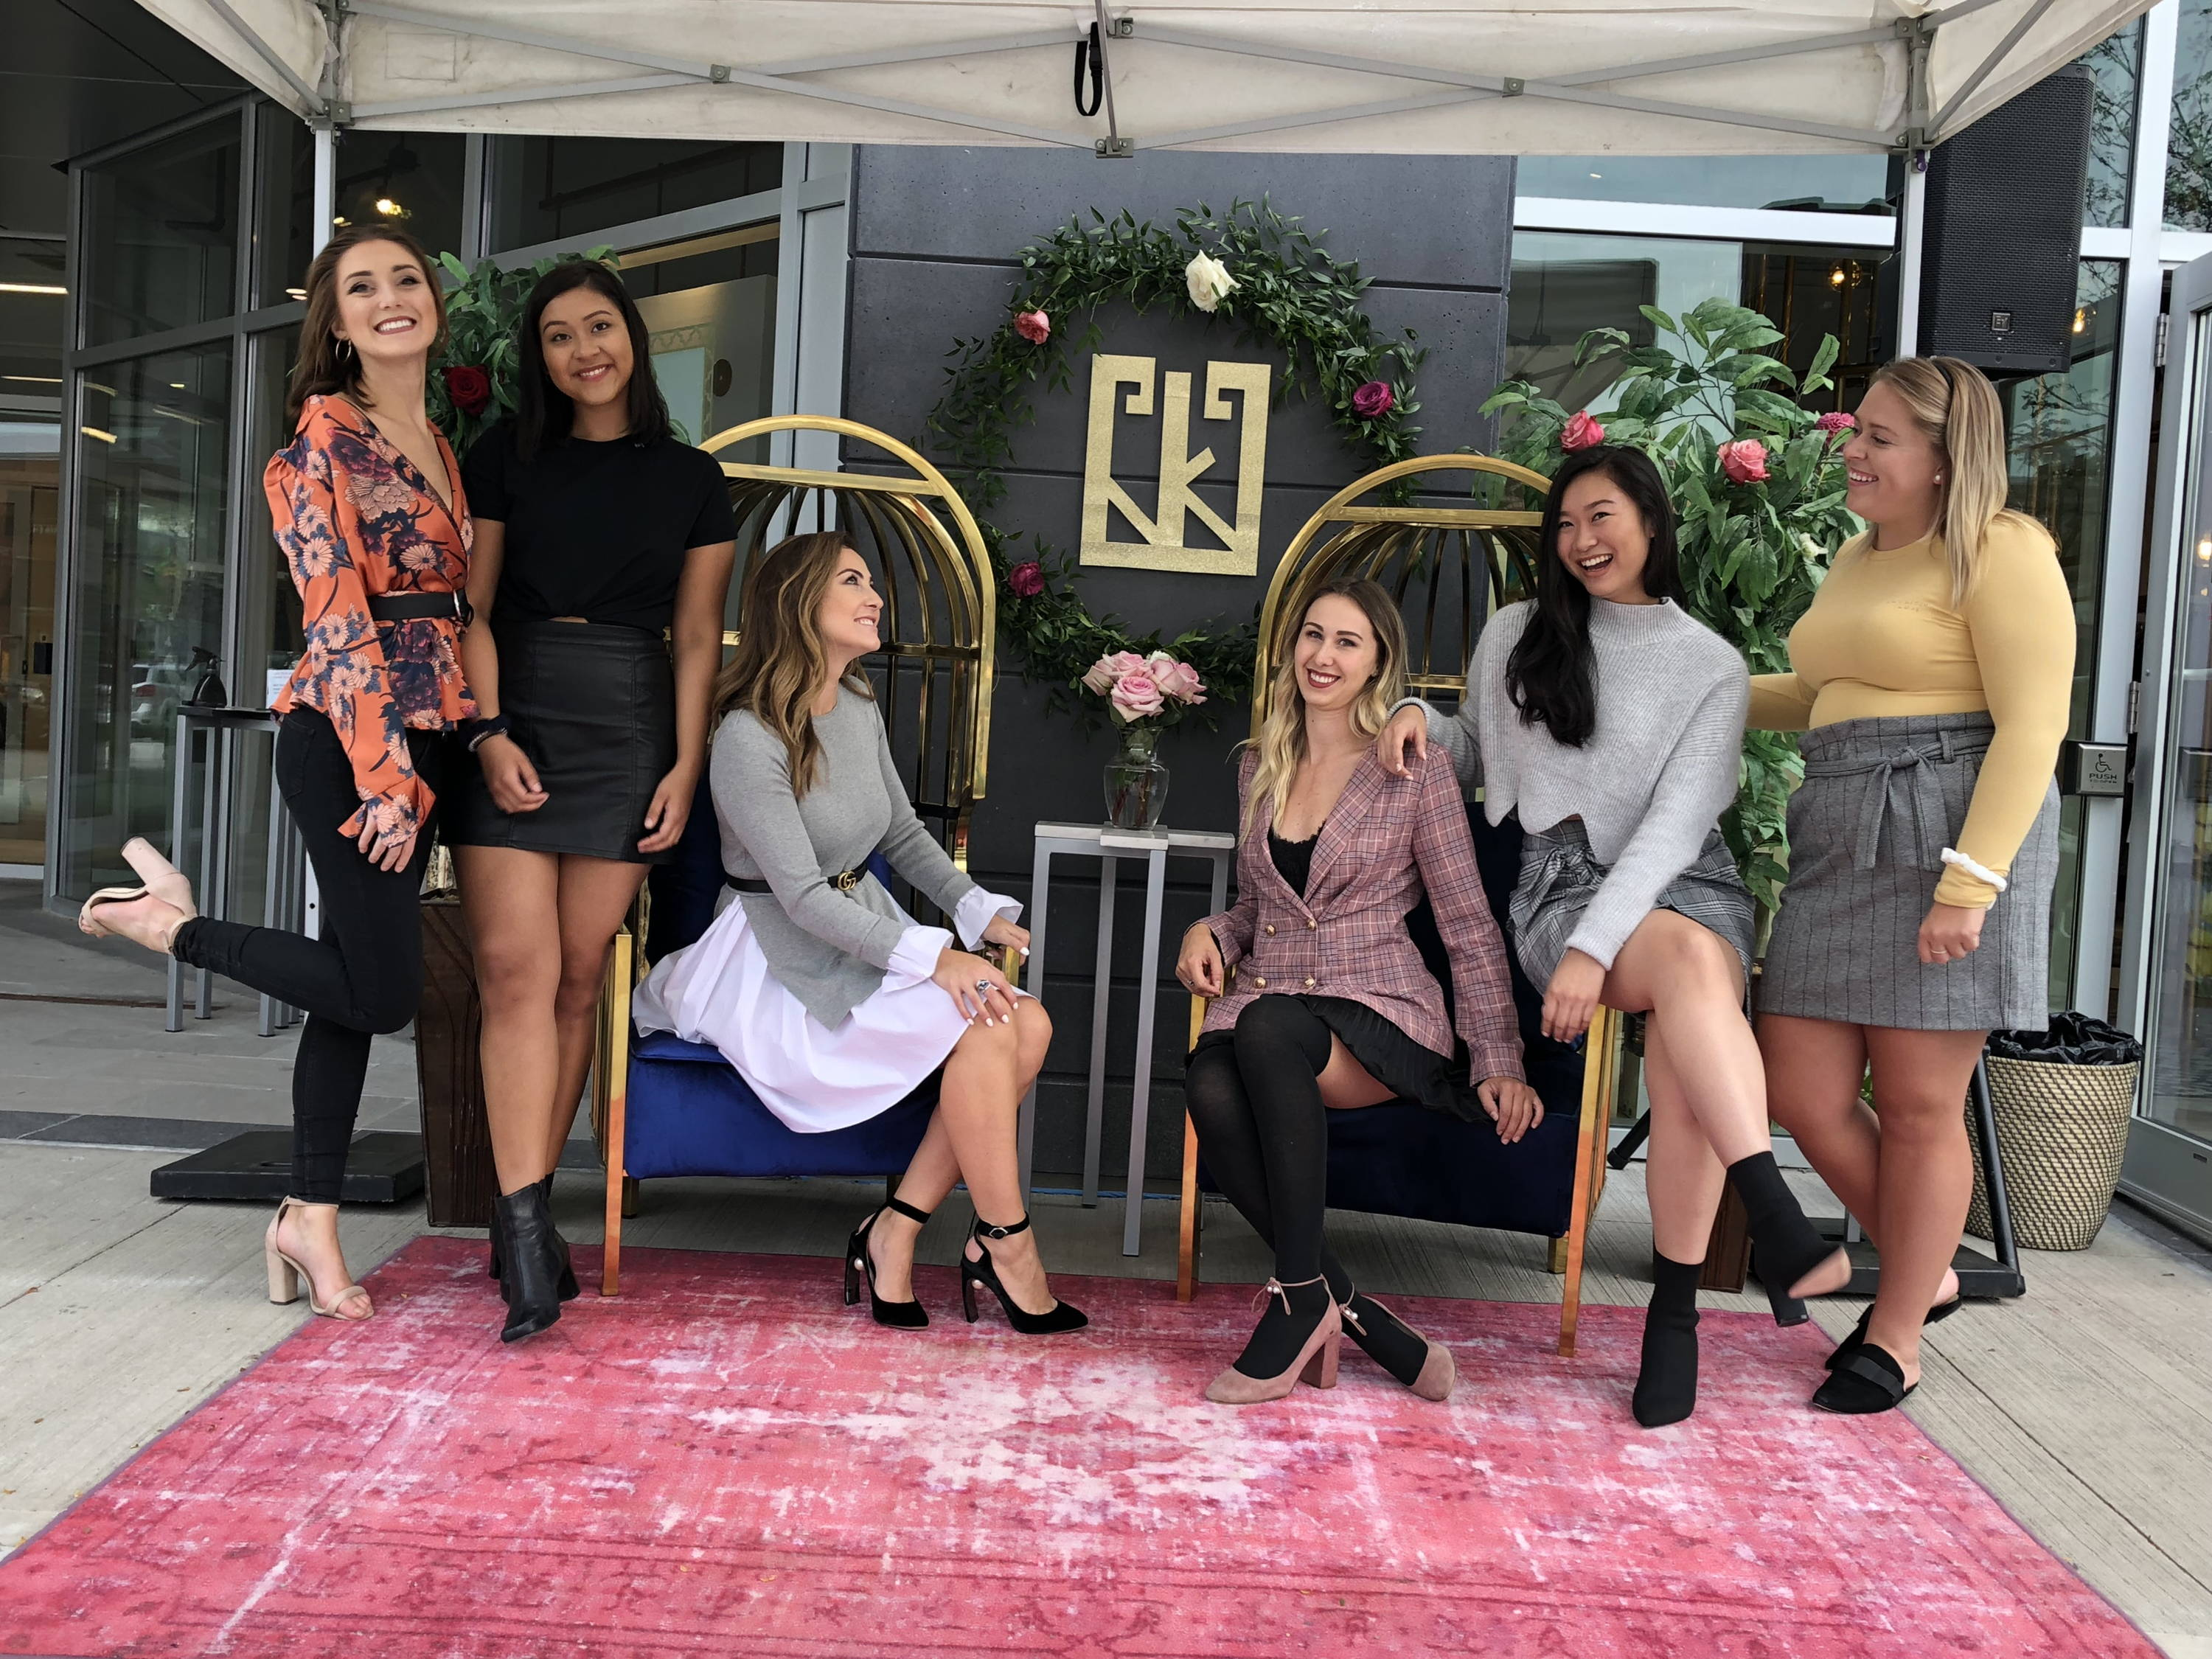 Group of UNI+KONCEPT employees posing for a photo during the store grand opening event in september 2018. located uptown waterloo kitchener. pink rug, two gold chairs.